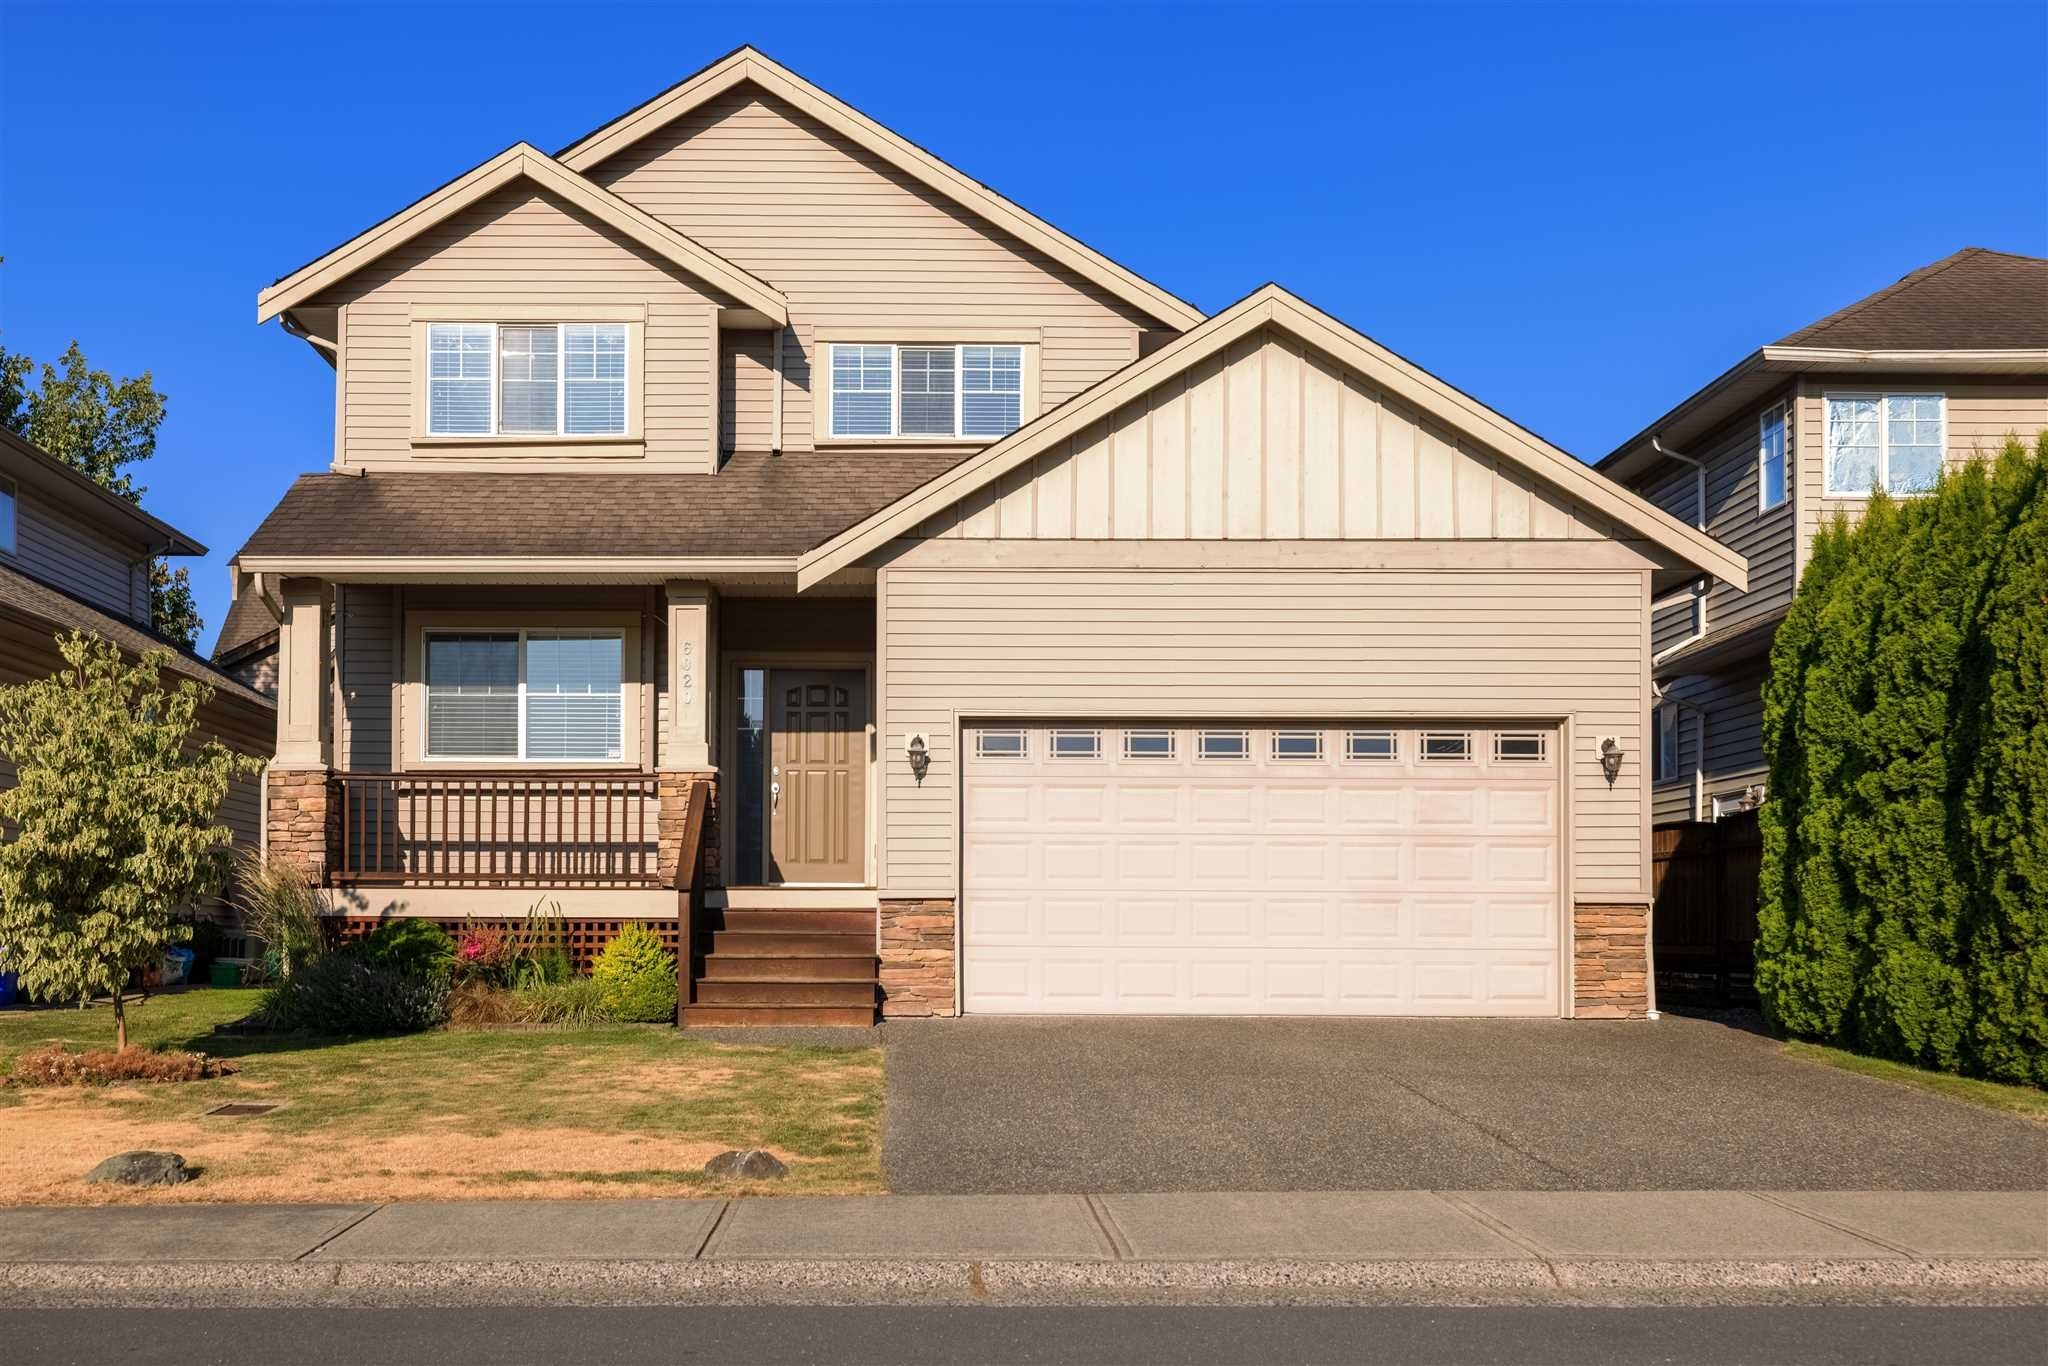 Main Photo: 6020 GLENMORE Drive in Chilliwack: Sardis West Vedder Rd House for sale (Sardis)  : MLS®# R2600850